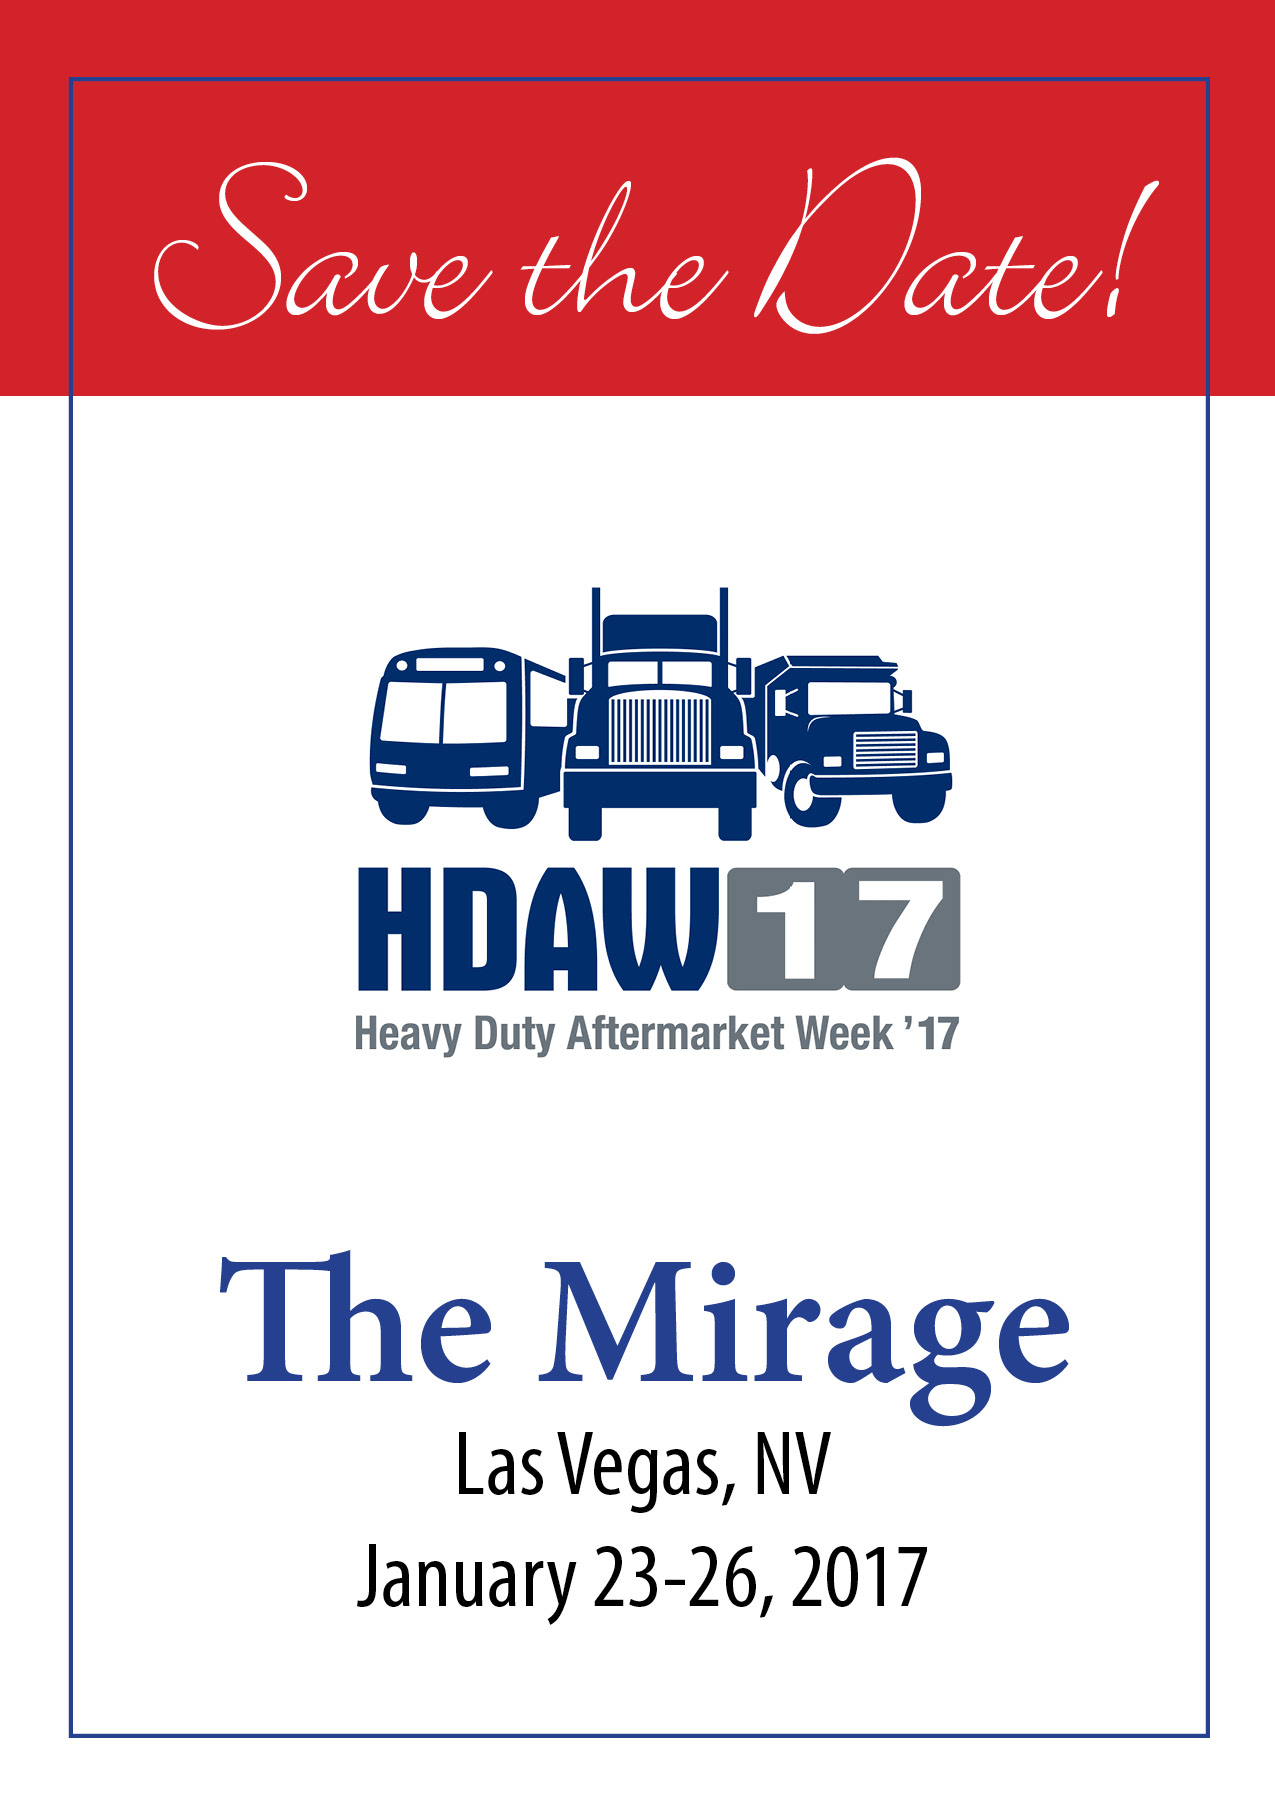 HDAW Truck Convention